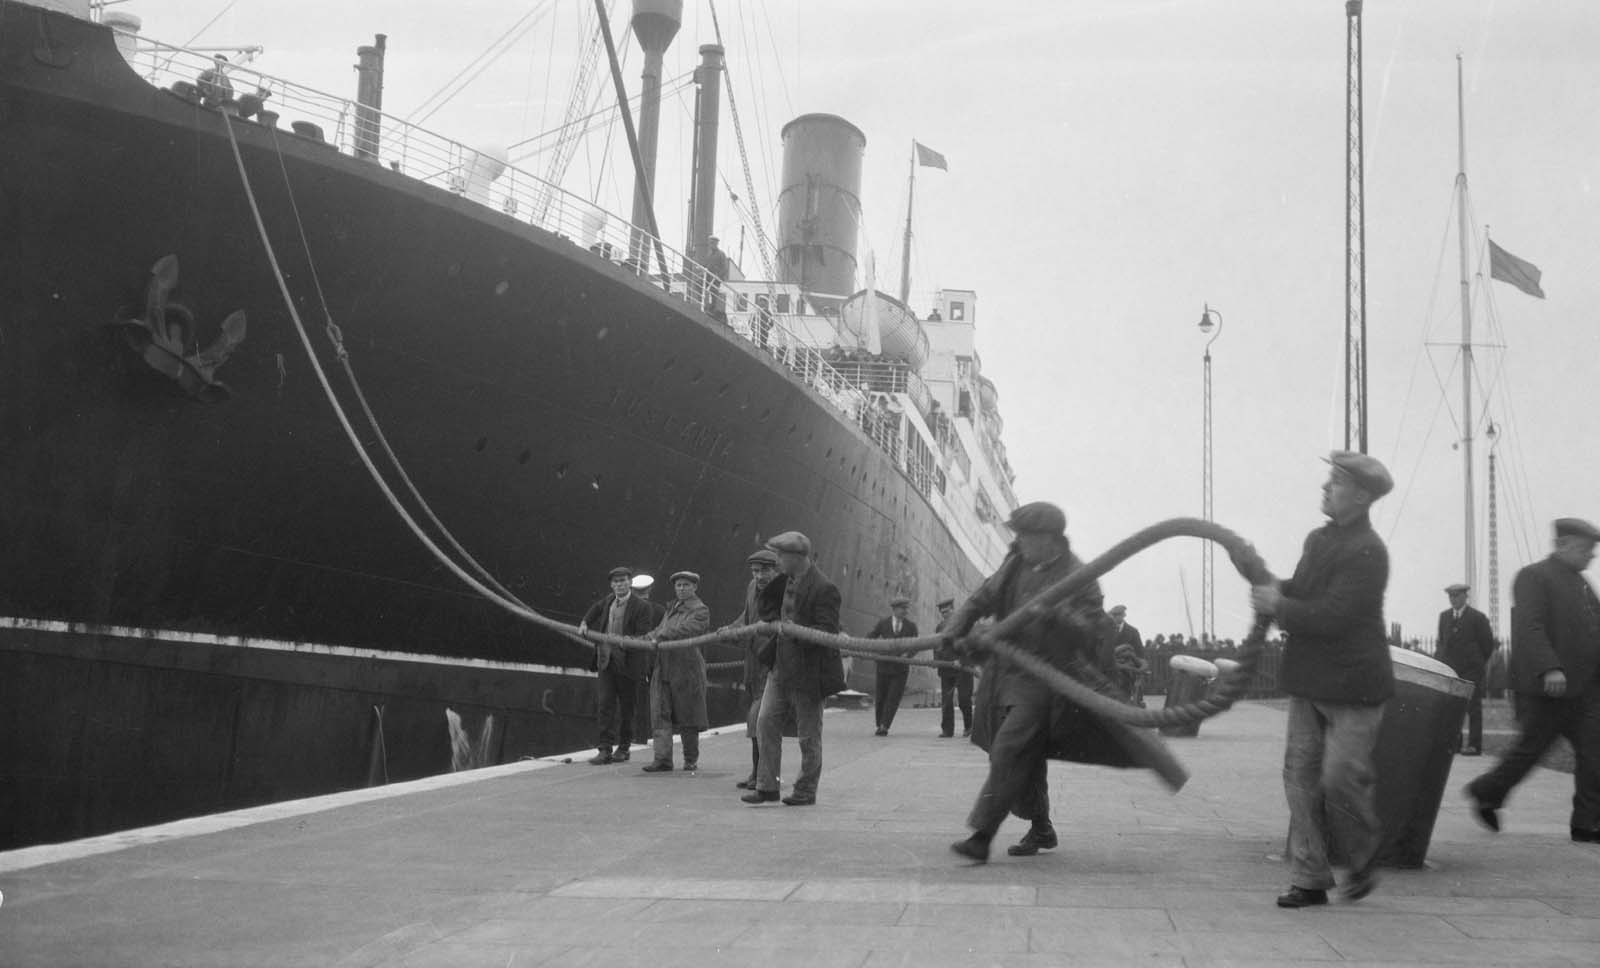 black and white photo of dock workers hauling the rope of a liner